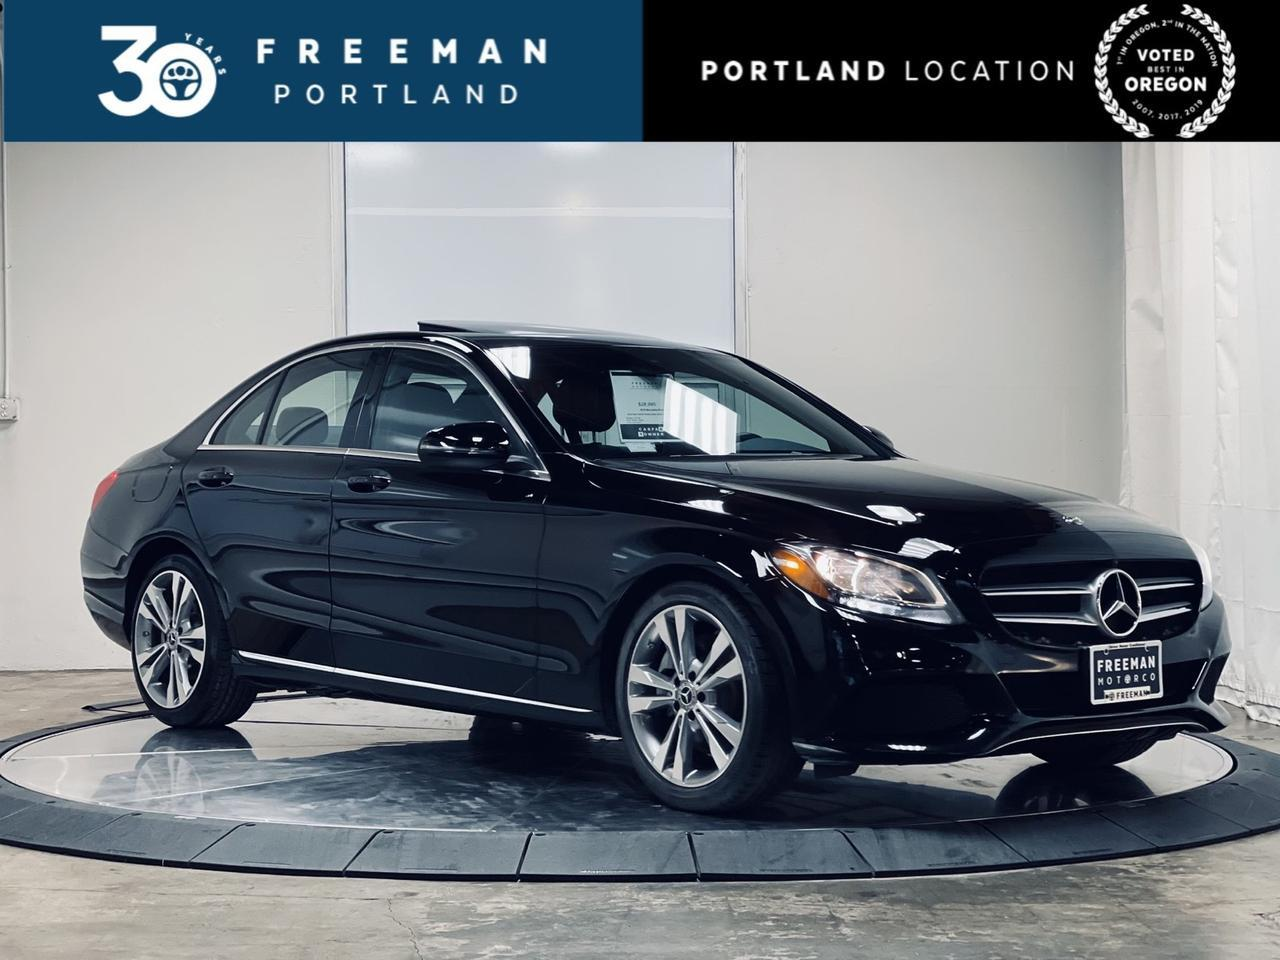 2018 Mercedes-Benz C300 Blind Spot Assist Heated Seats Apple Car Play Portland OR